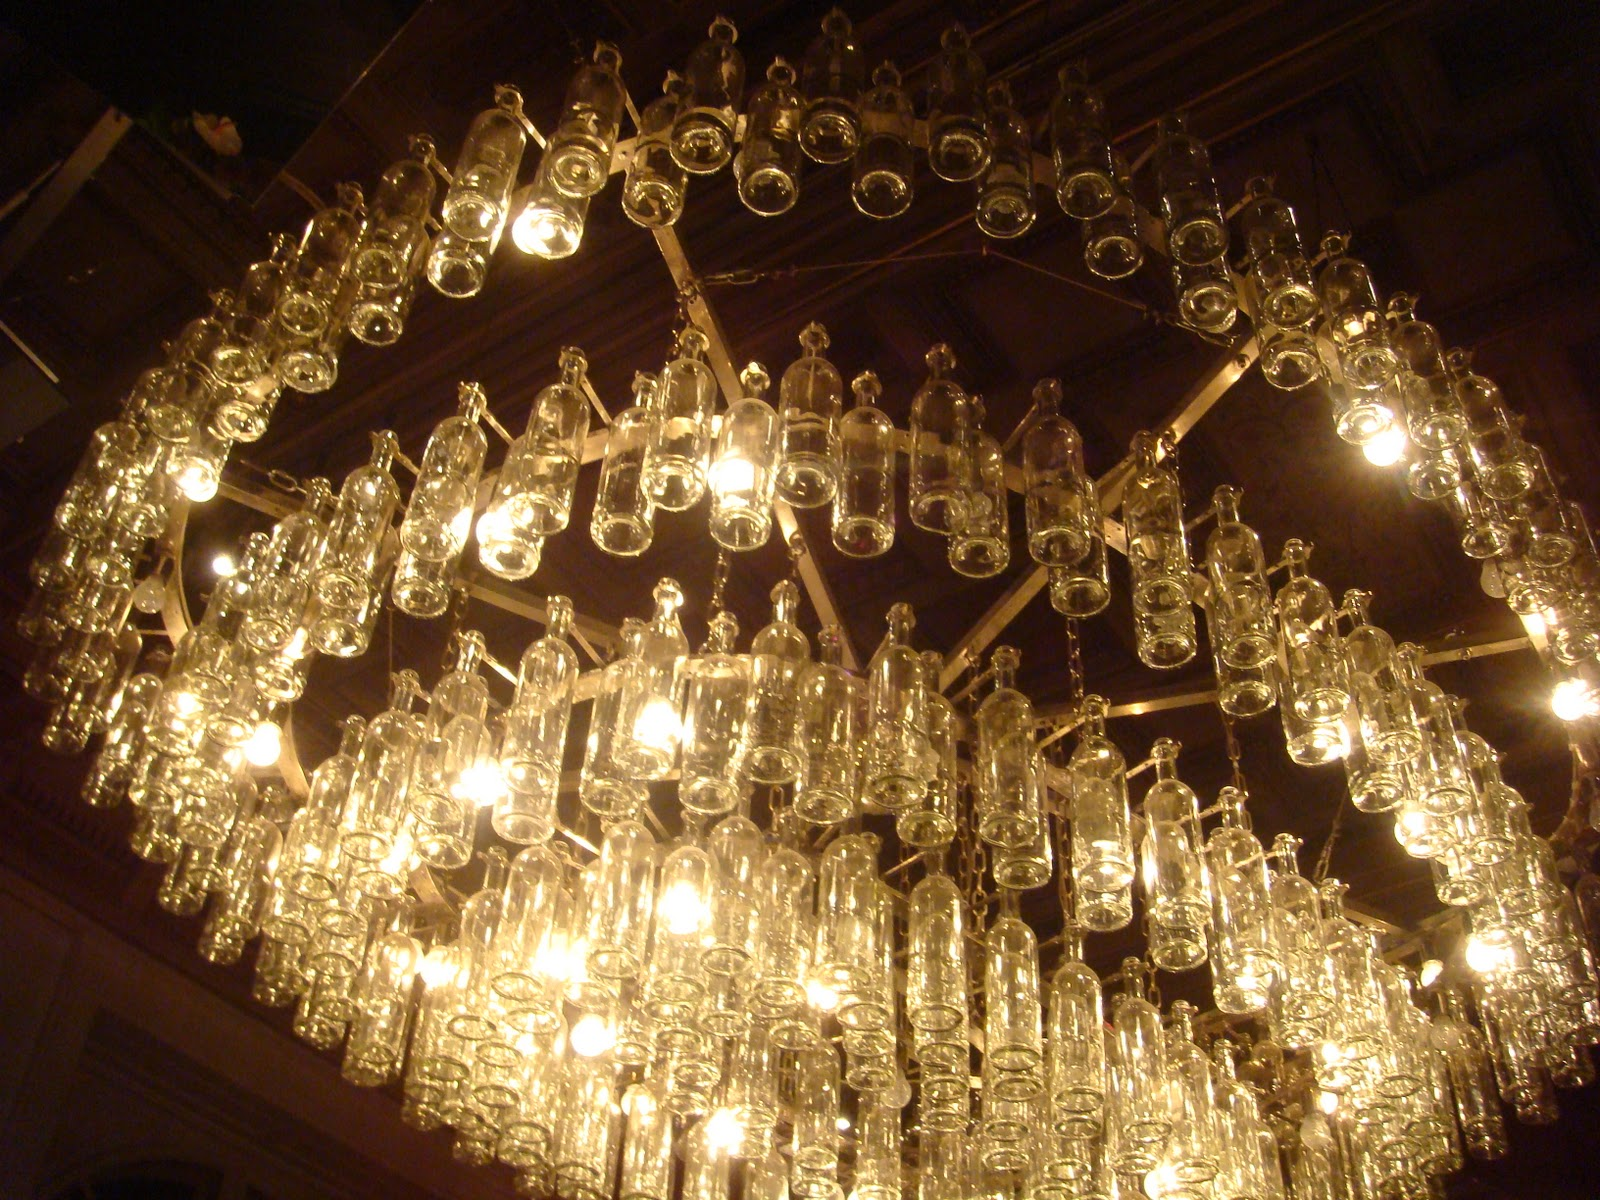 Large glass chandelier made from recycled glass bottles